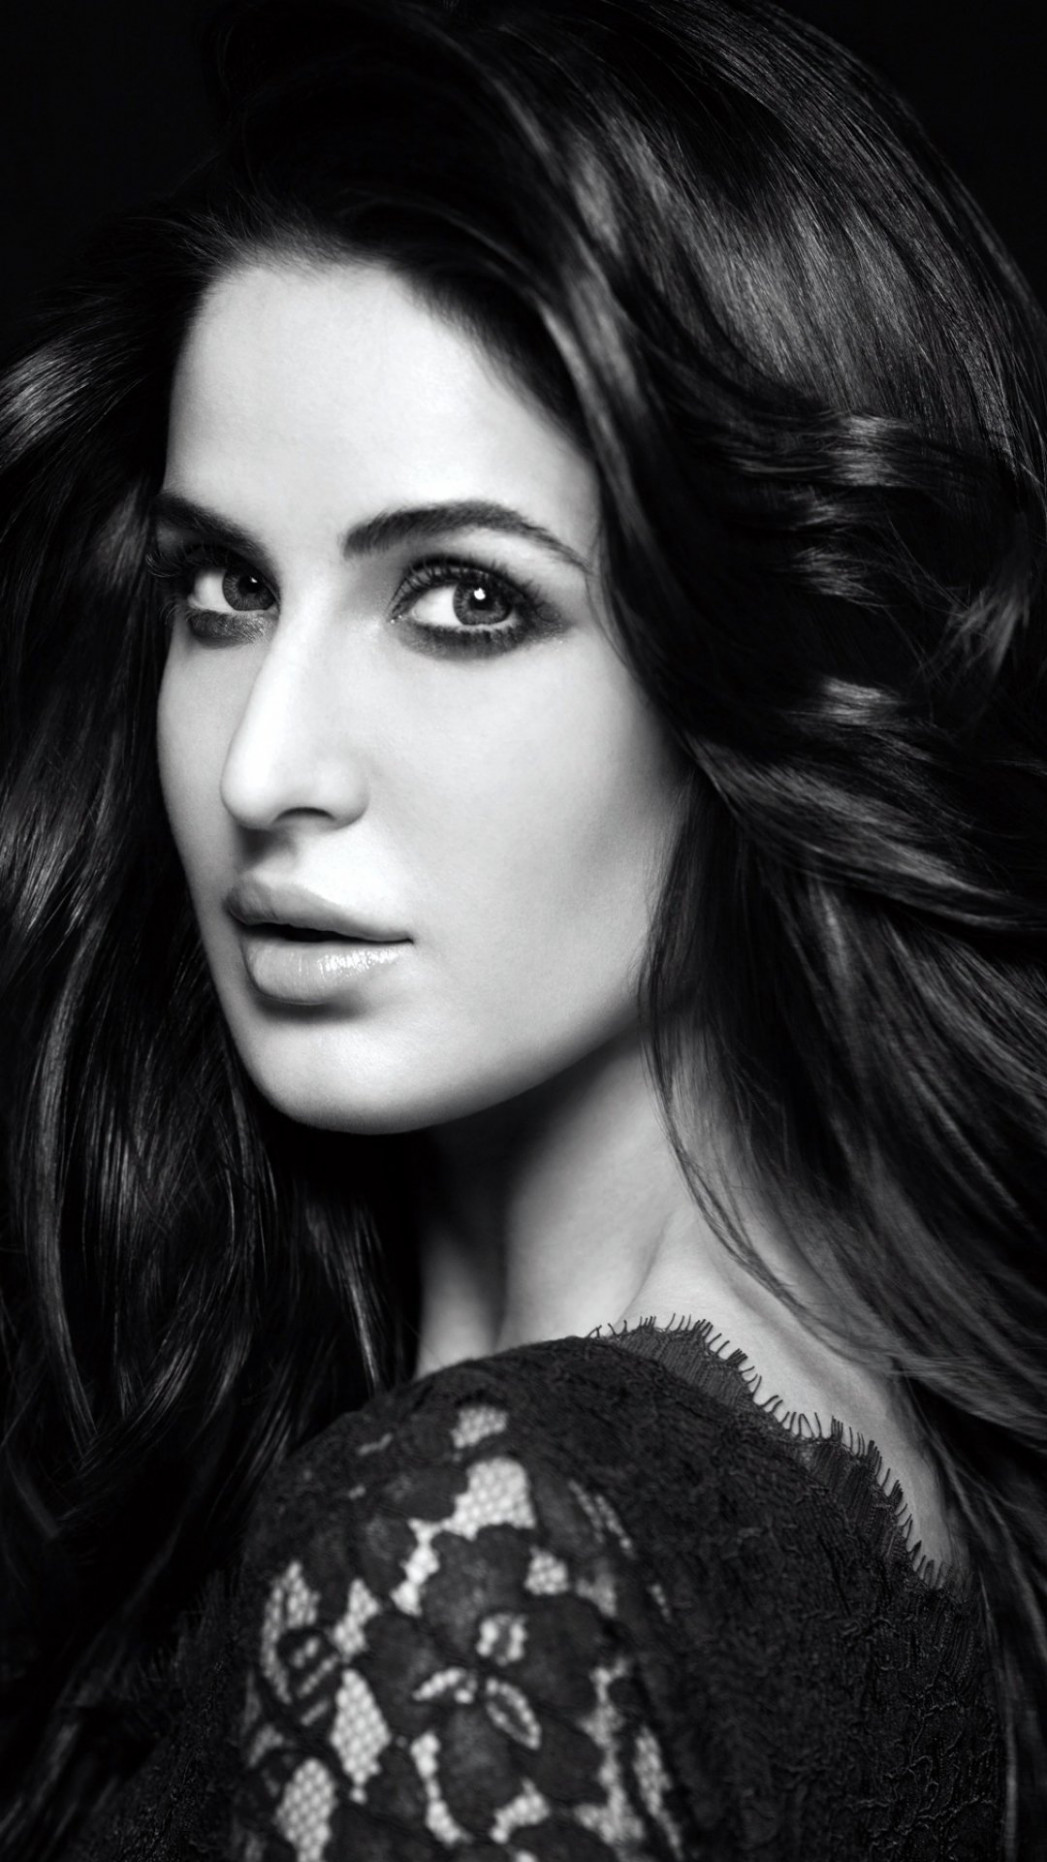 Katrina kaif hd wallpapers for iphone | Latest HD Wallpapers